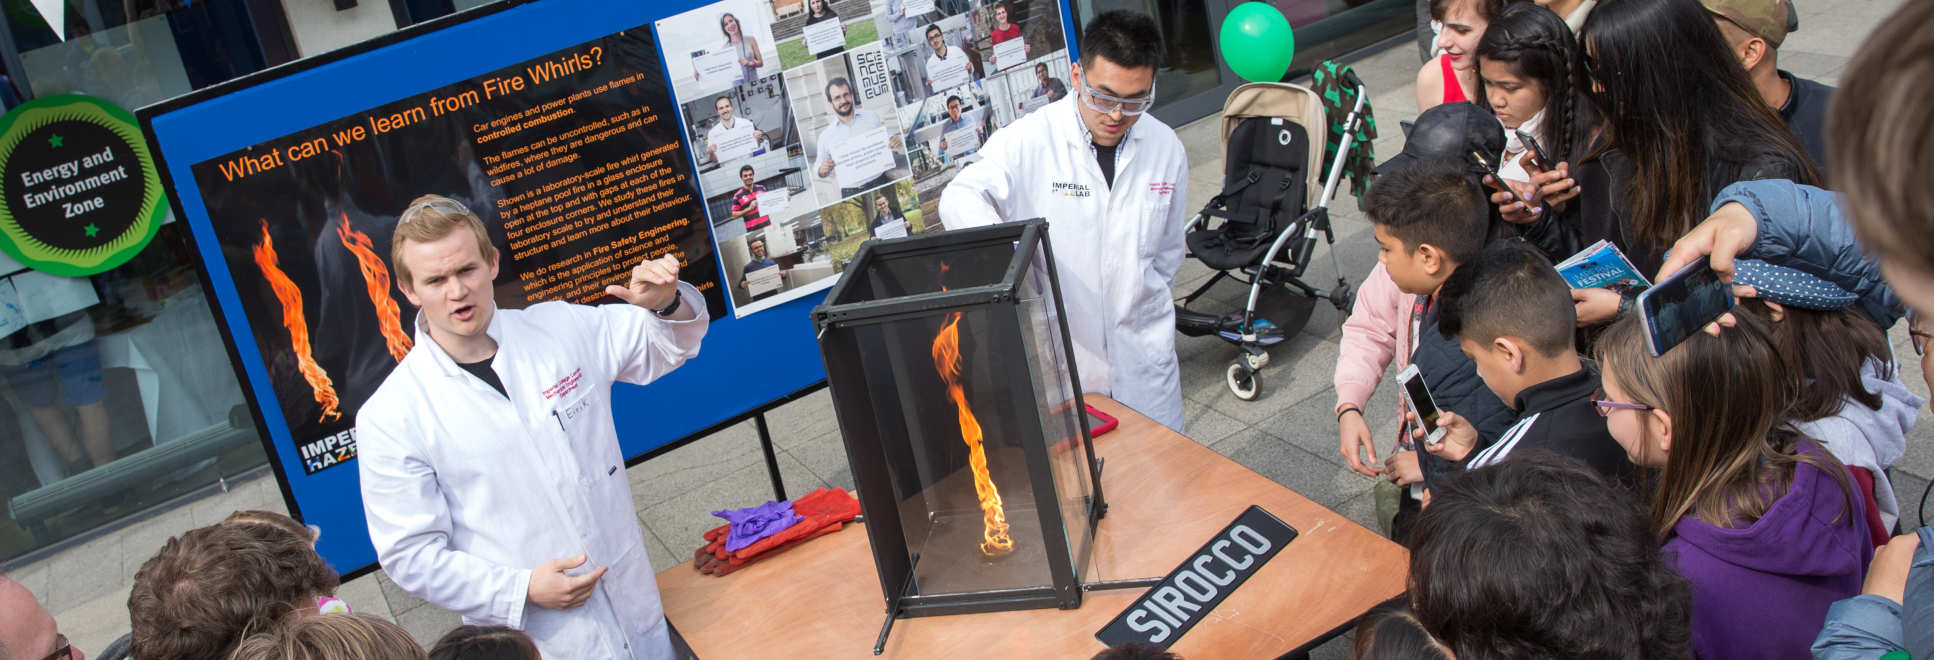 Researchers demonstrate a 'fire whirl' at Imperial Festival